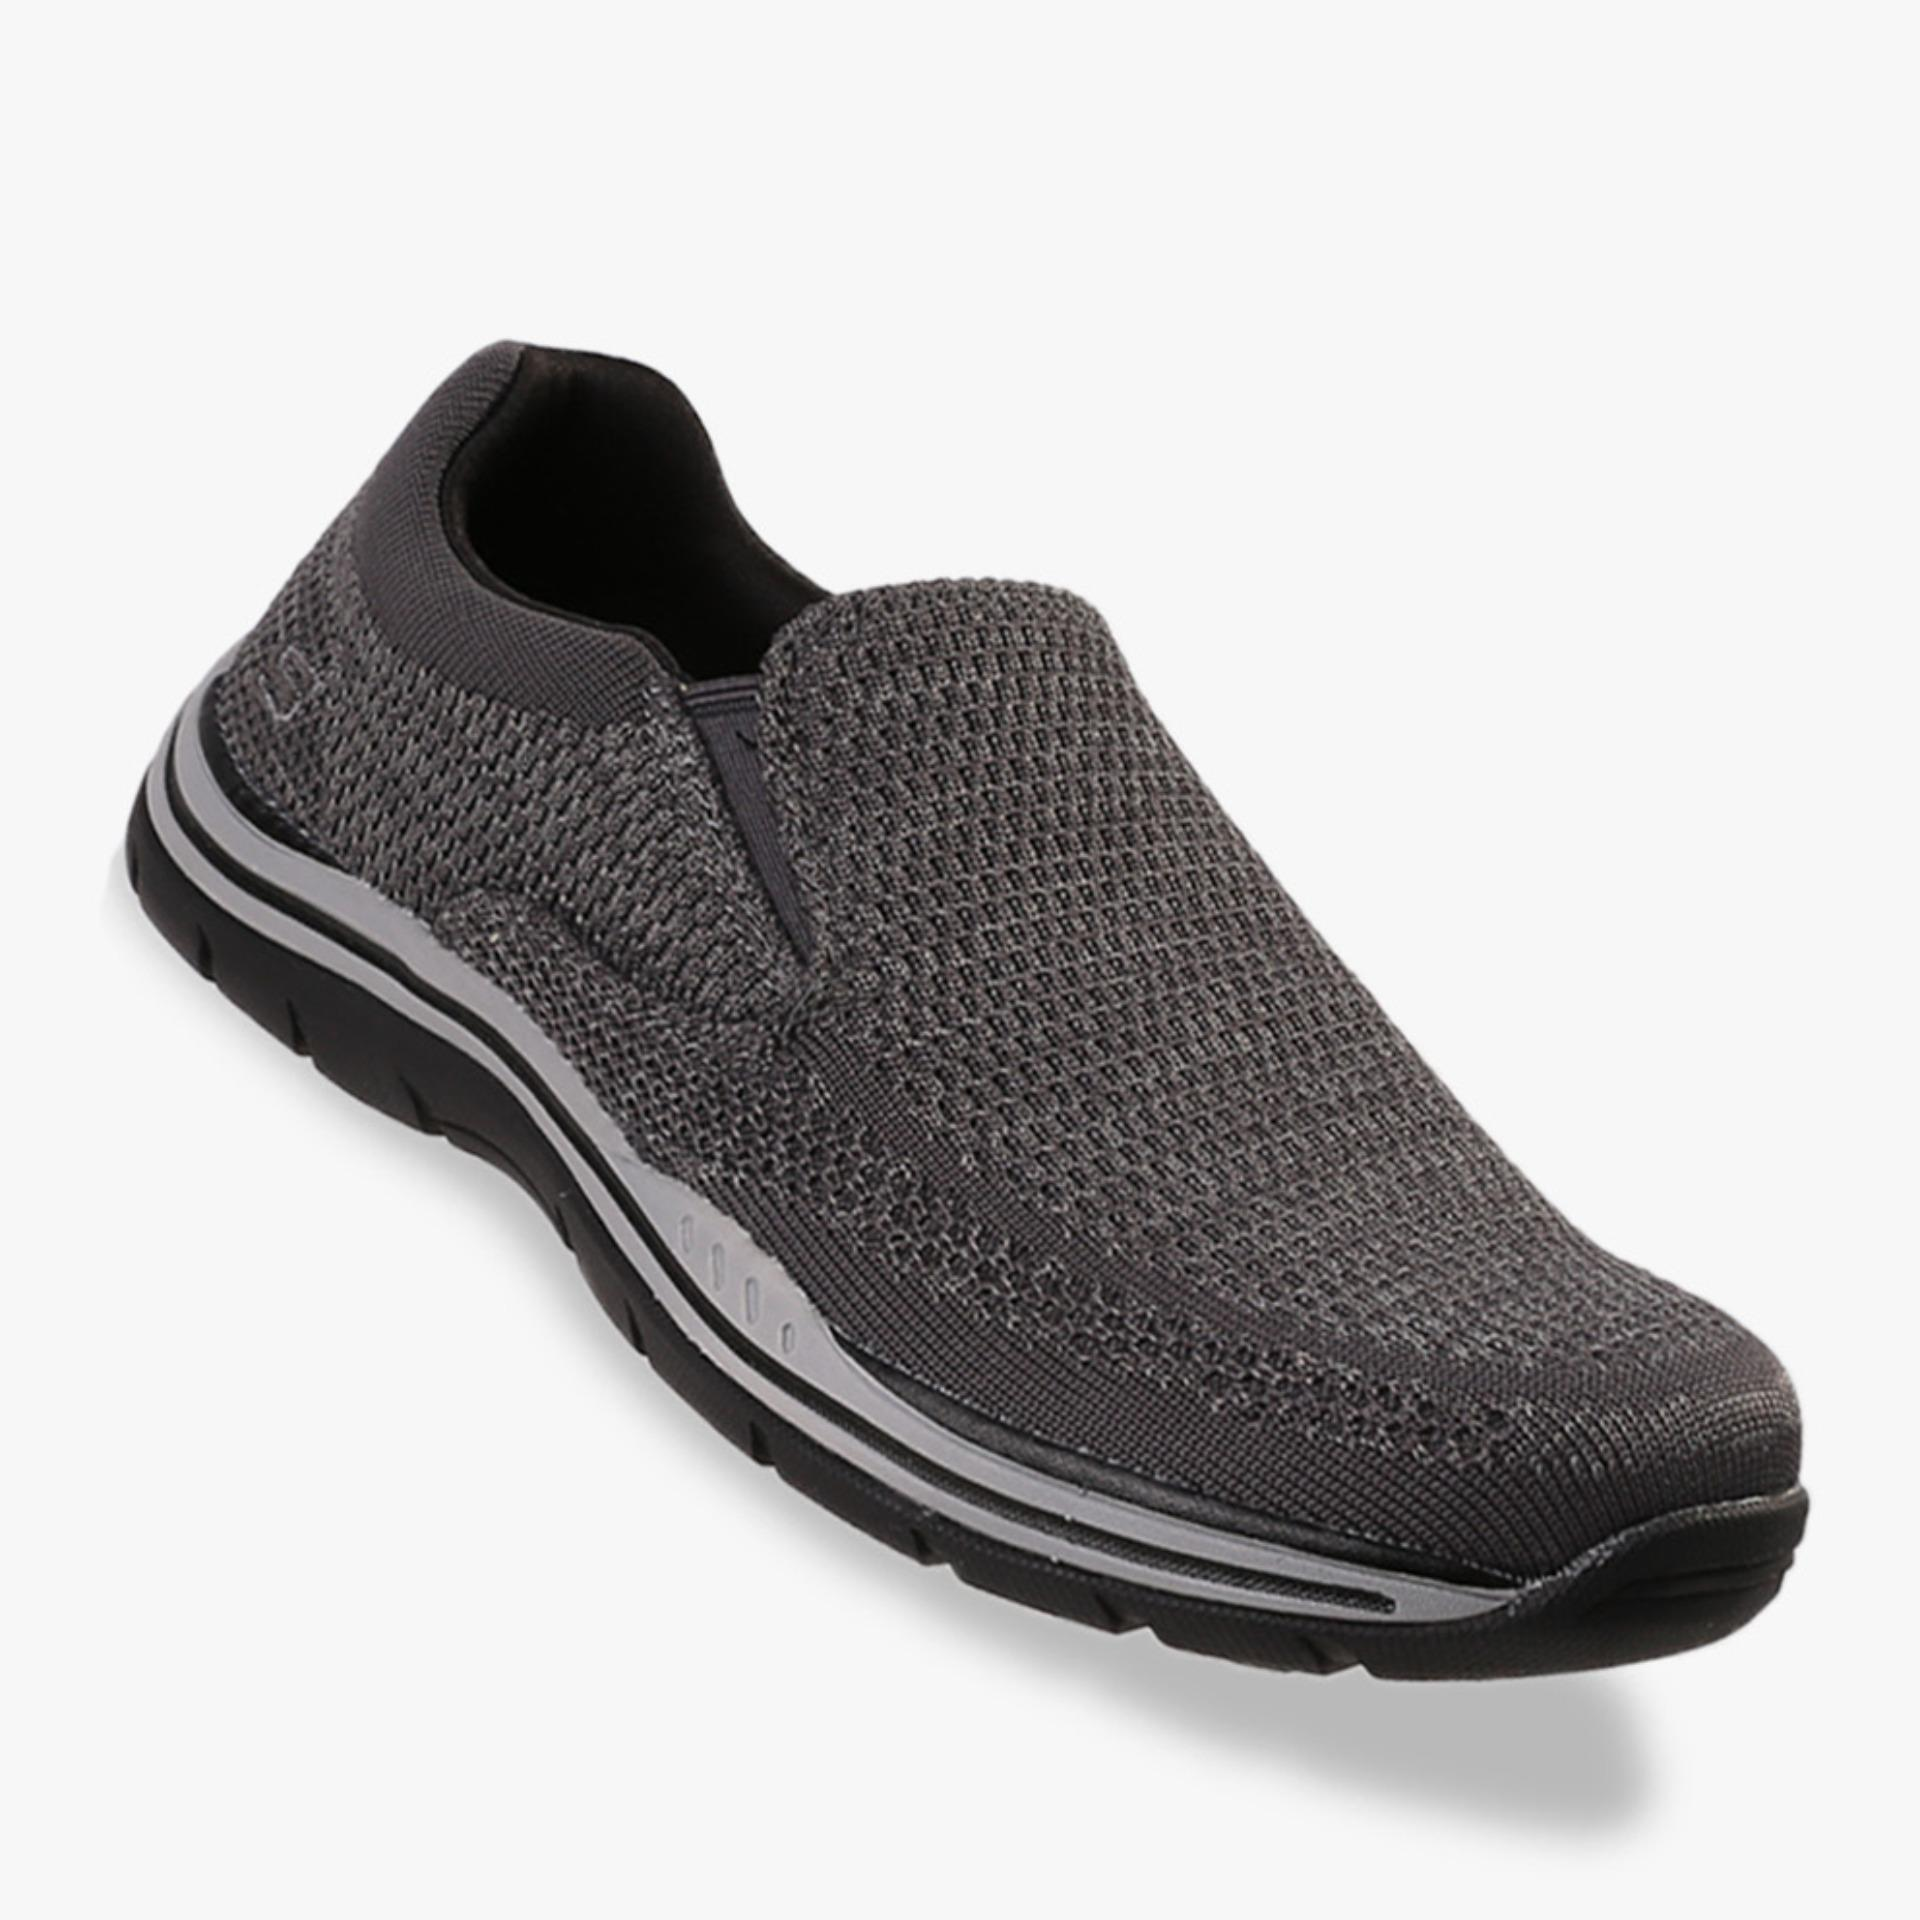 Katalog Skechers Relaxed Fit Expected Gomel Men S Sneakers Shoes Abu Abu Terbaru